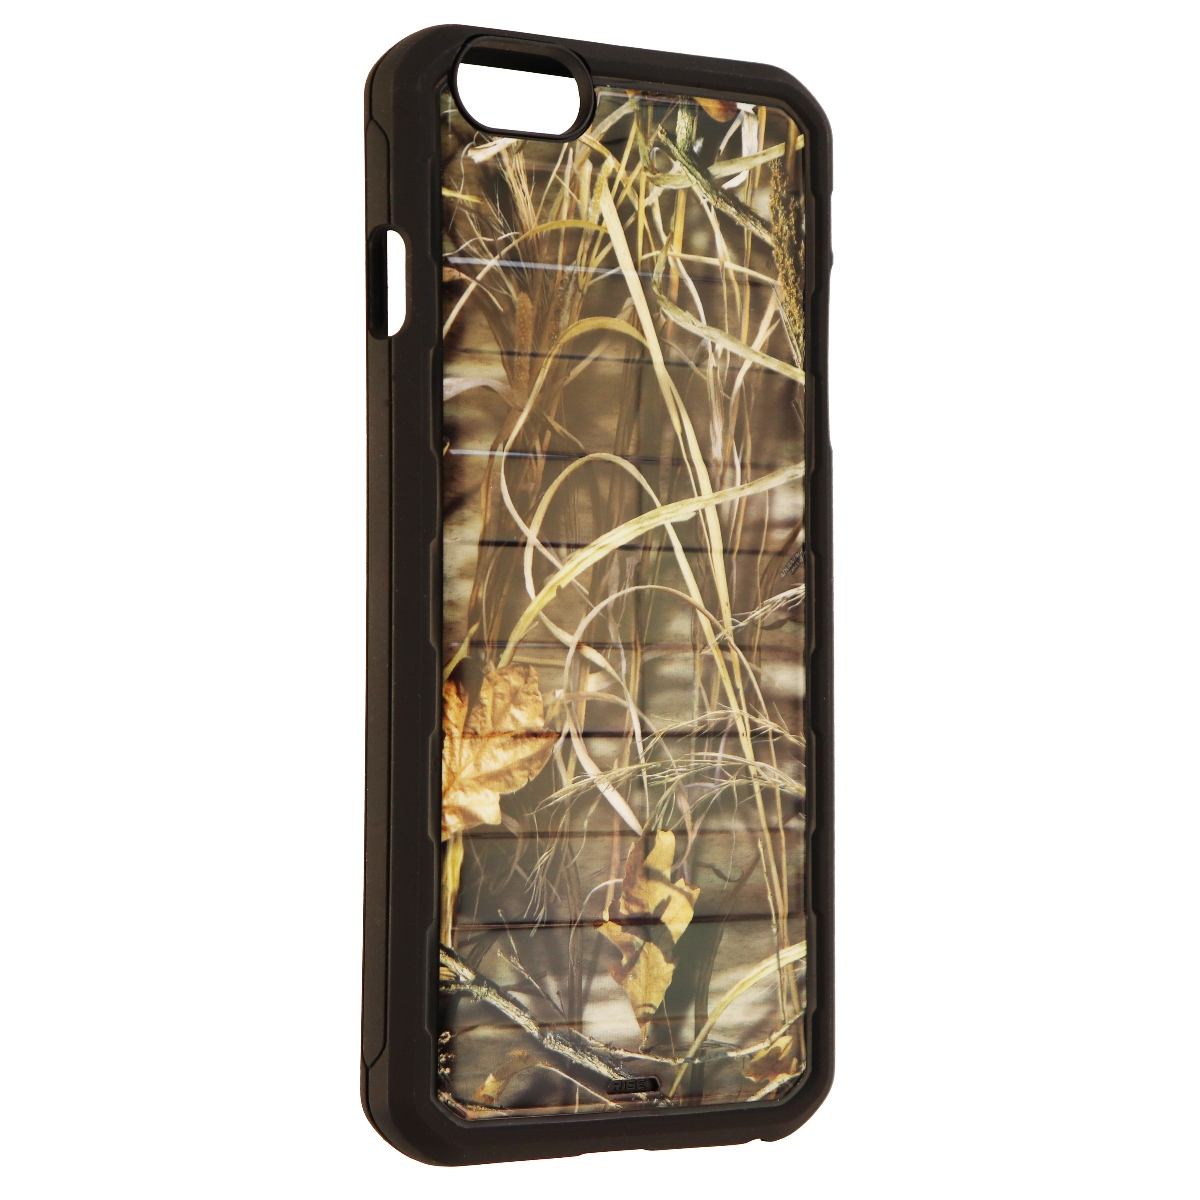 Tough Mobile Realtree Series Case Cover for iPhone 6s Plus 6 Plus - Camo